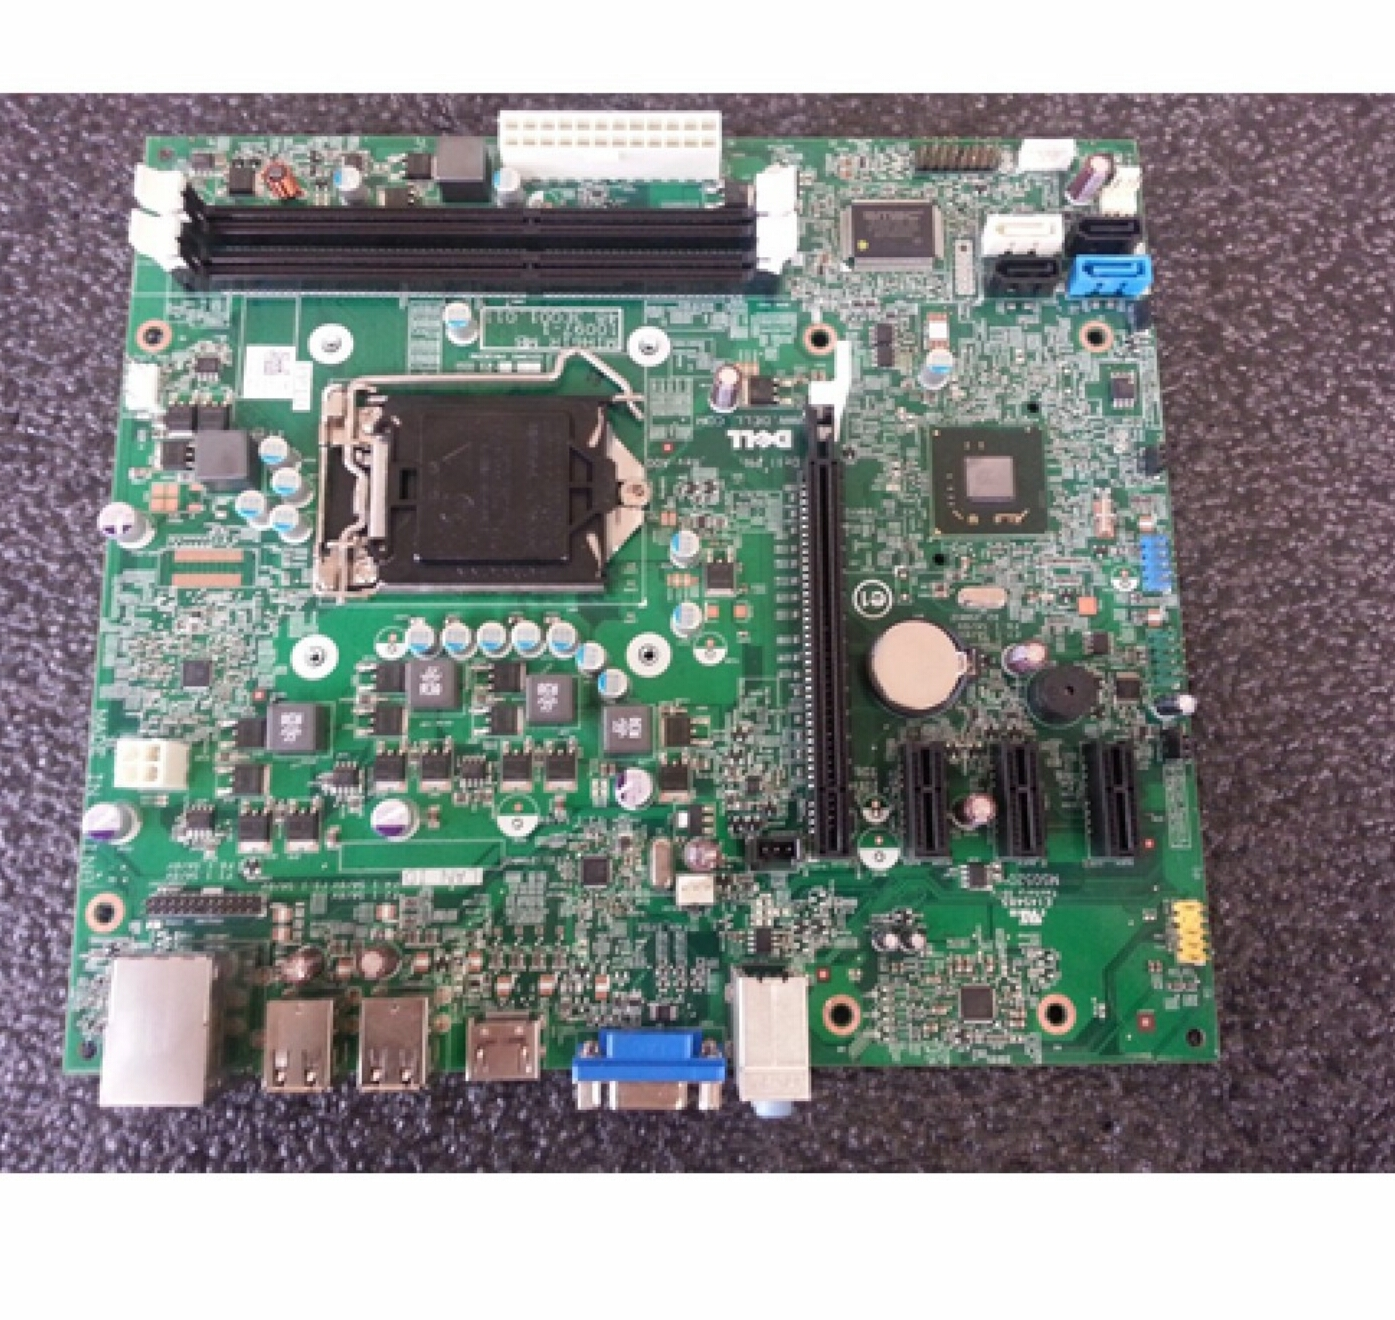 Is there any disadvantages to using a dell mobo rather than a